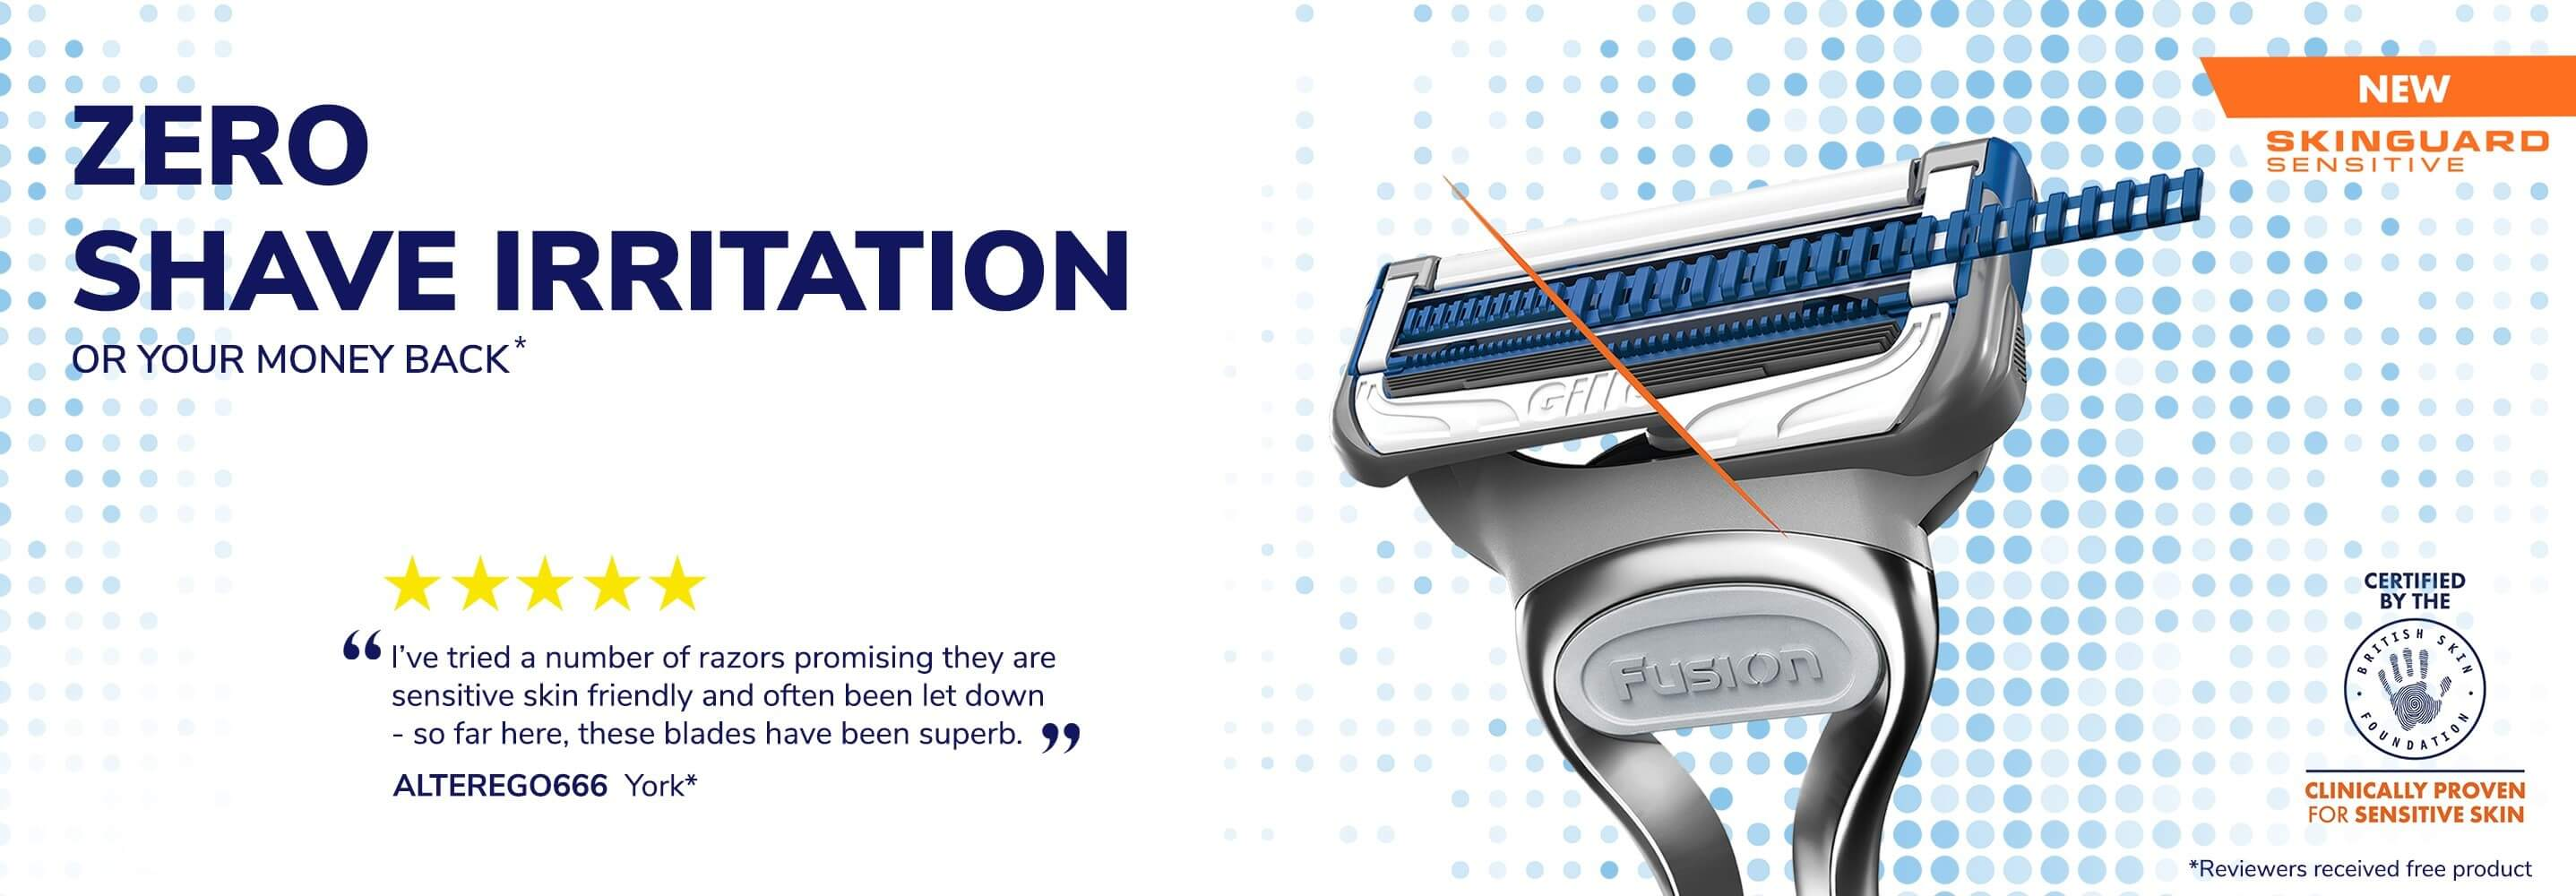 Gillette Skinguard Sensitive Zero Shave Irritation.